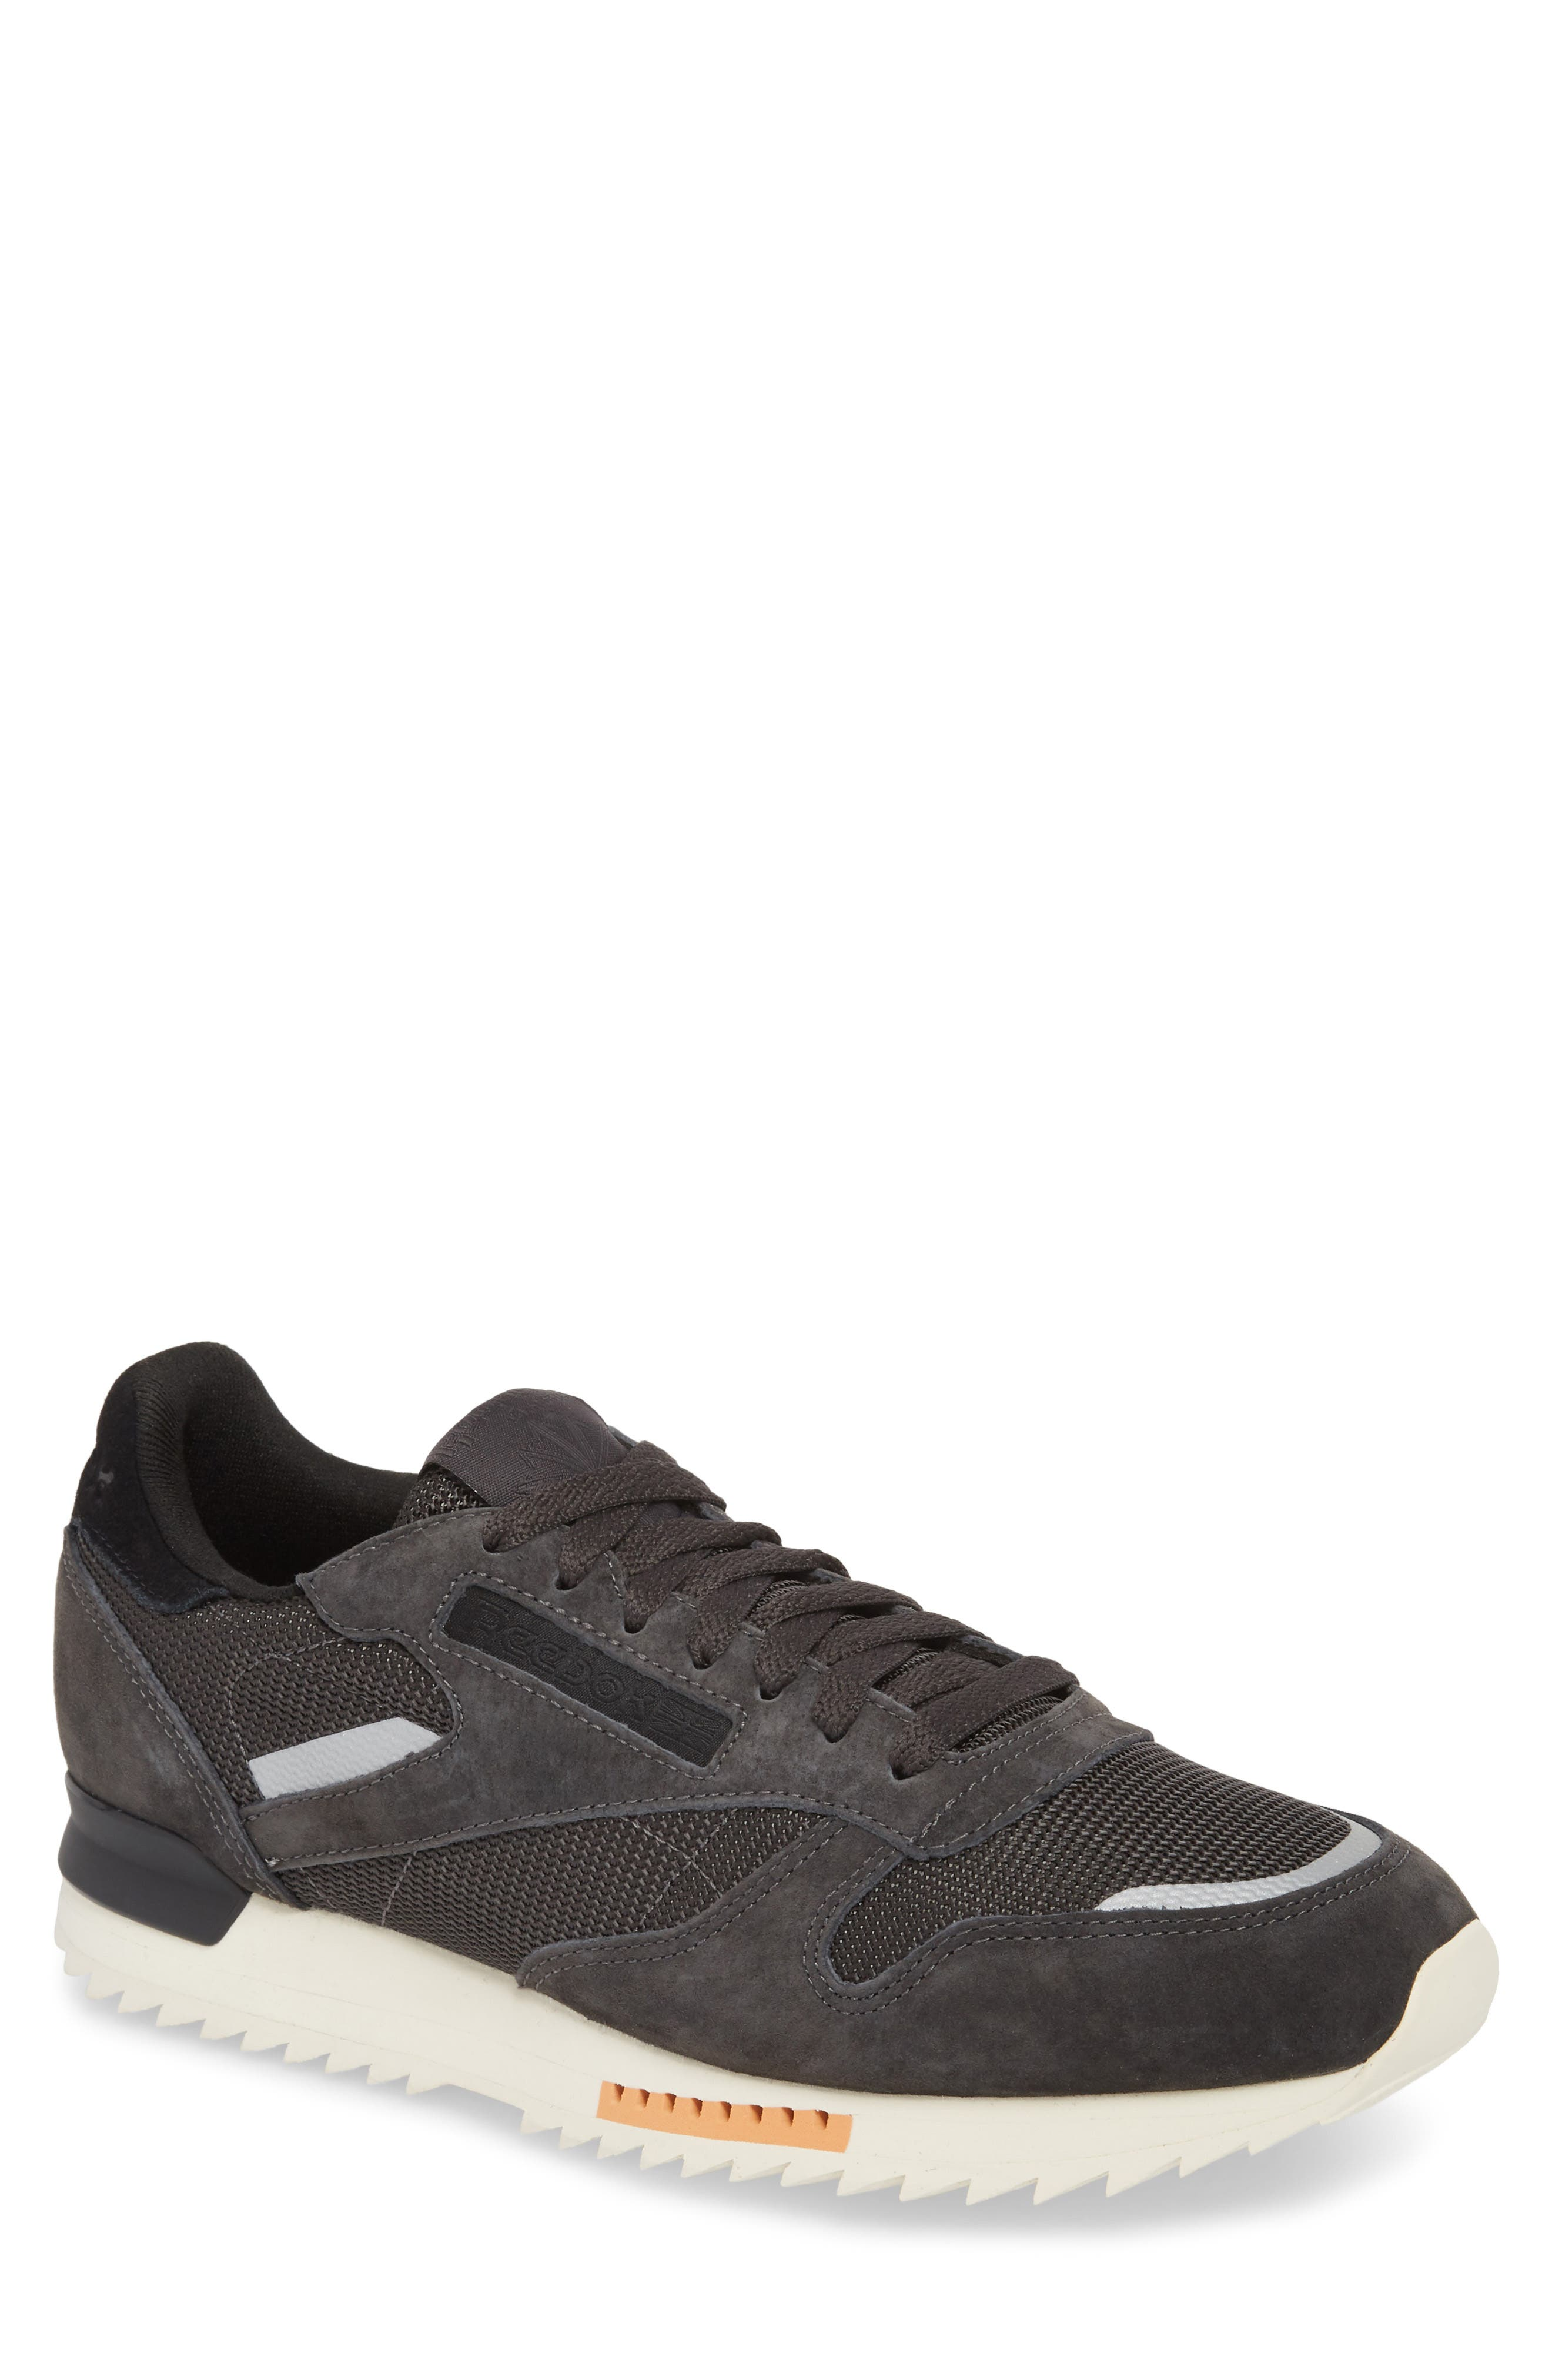 Reebok Classic Leather Ripple Sneaker (Men)